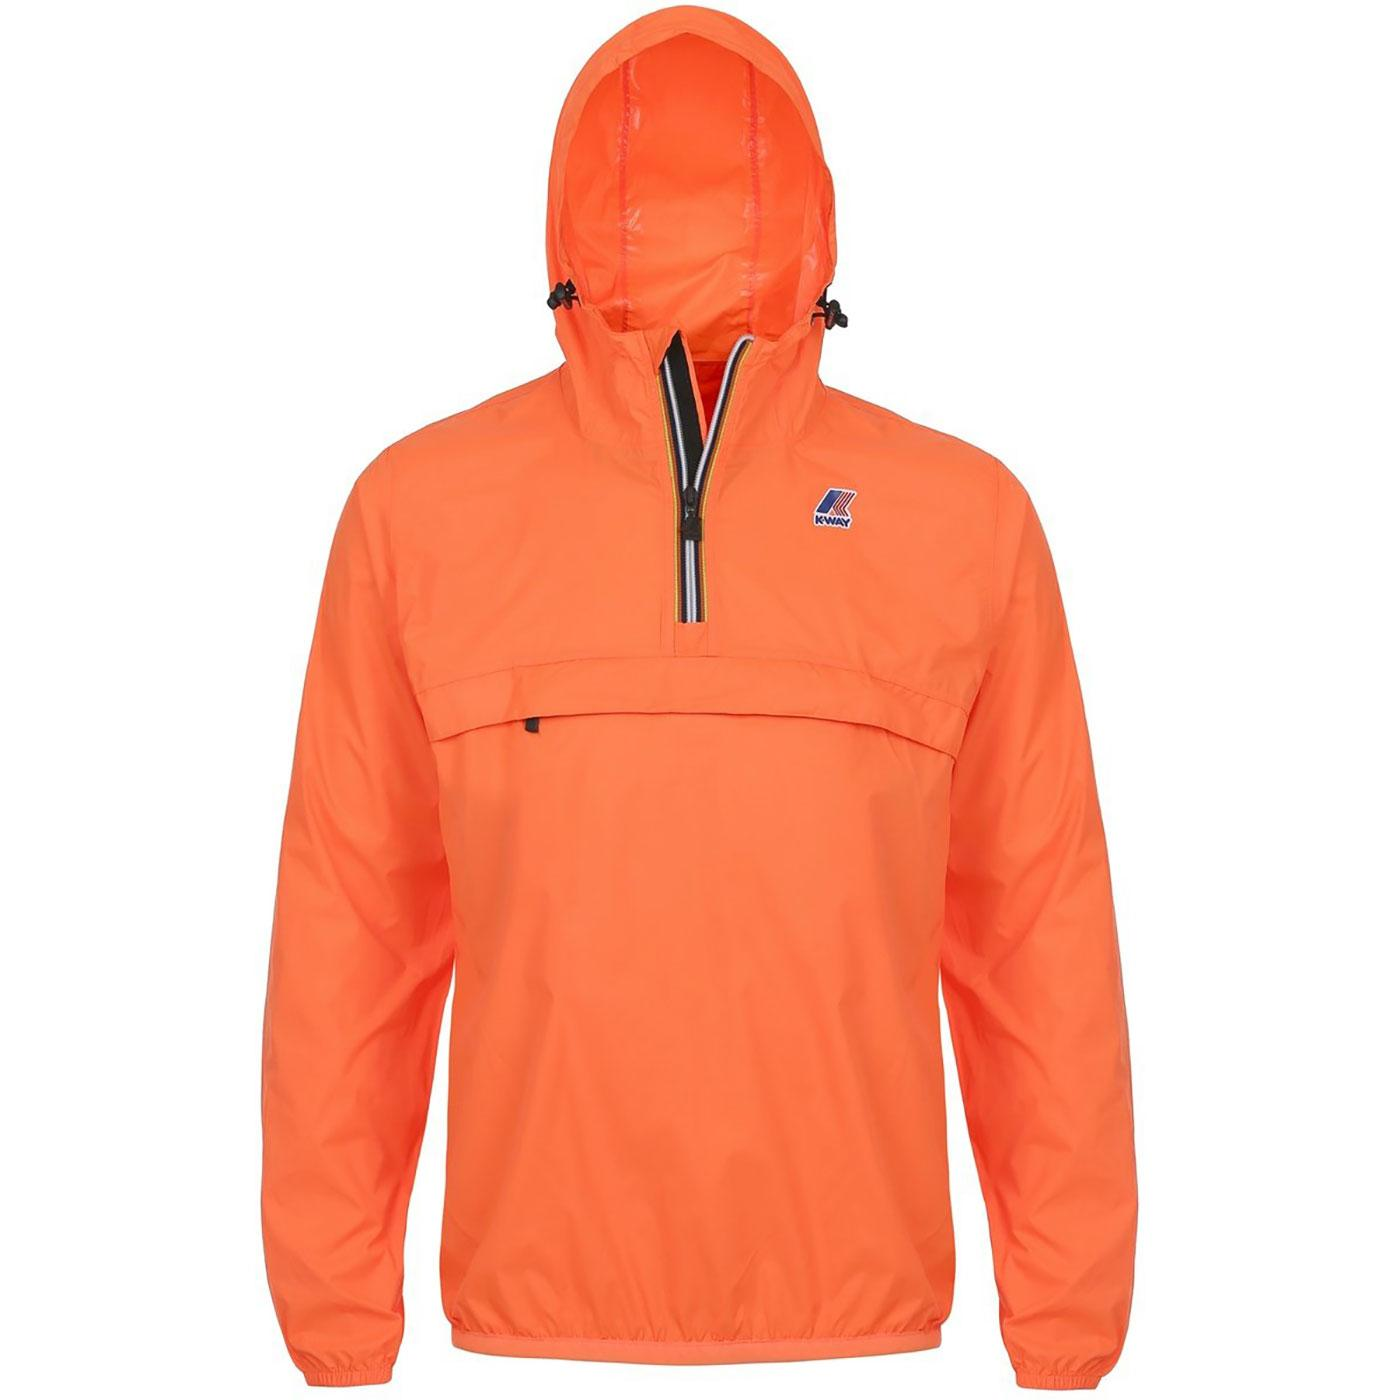 Leon K-WAY Retro Pack-A-Mac Overhead Jacket ORANGE